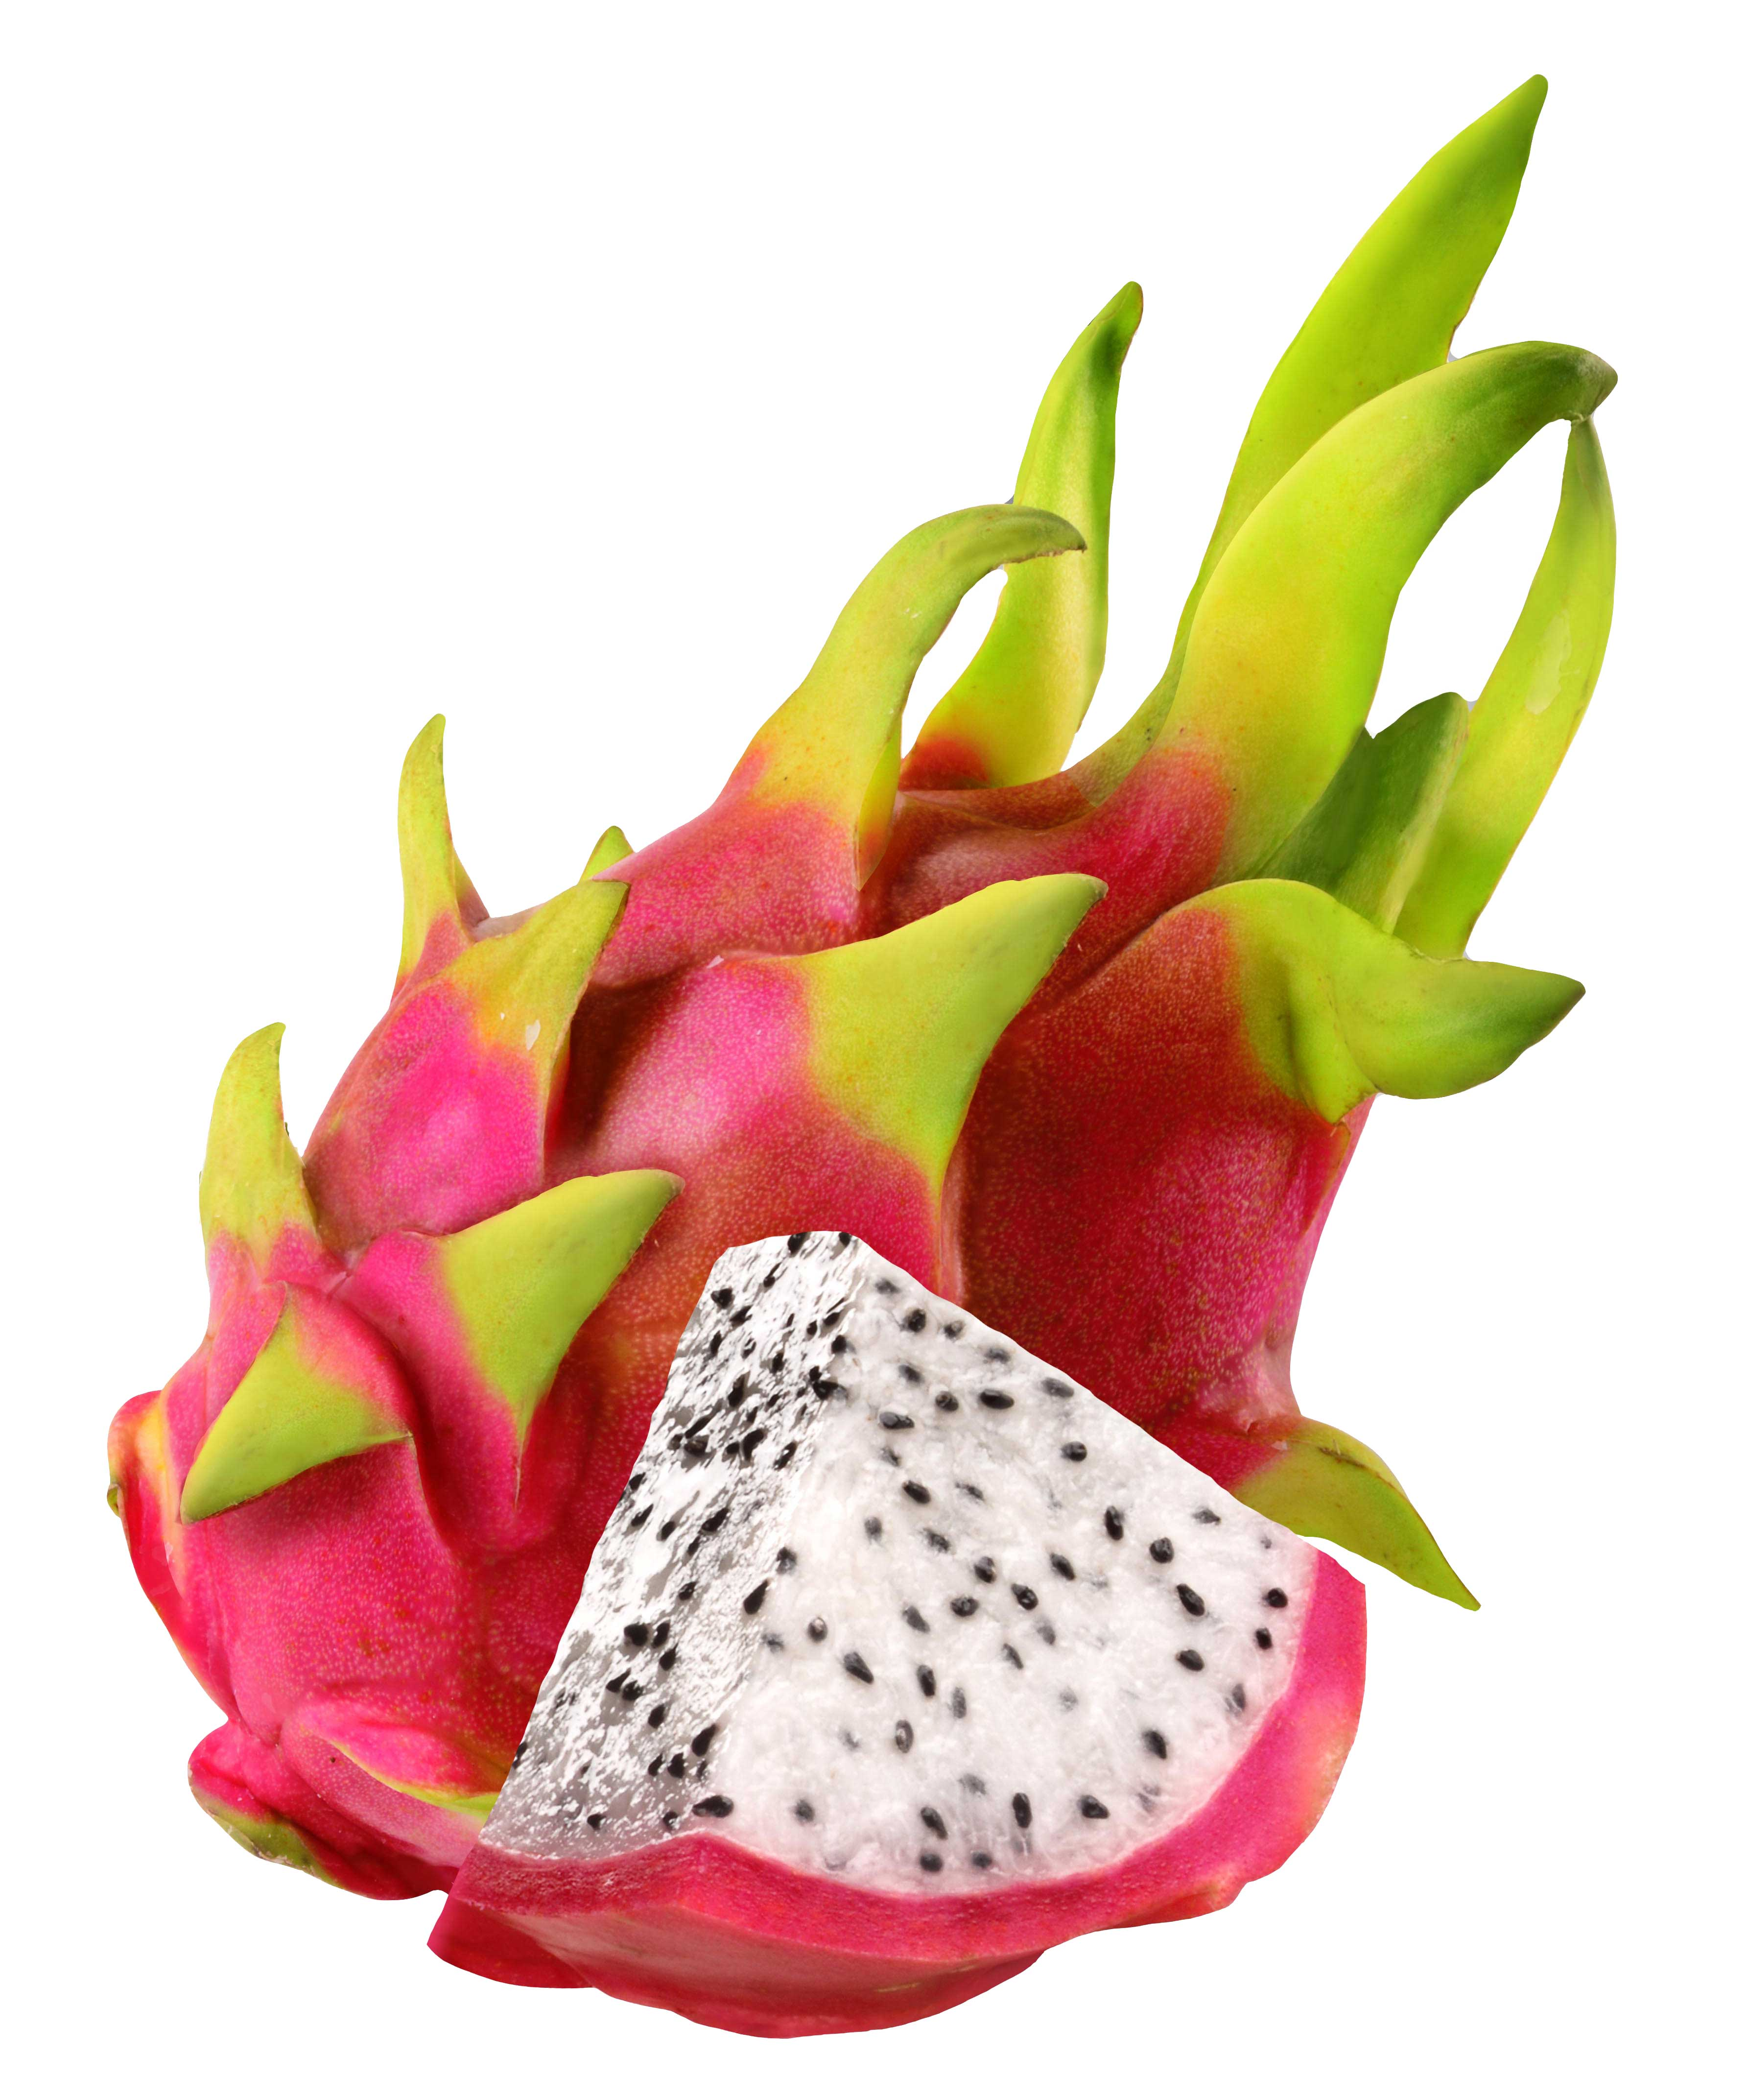 mike wepplo photoreal photography dragonfruit